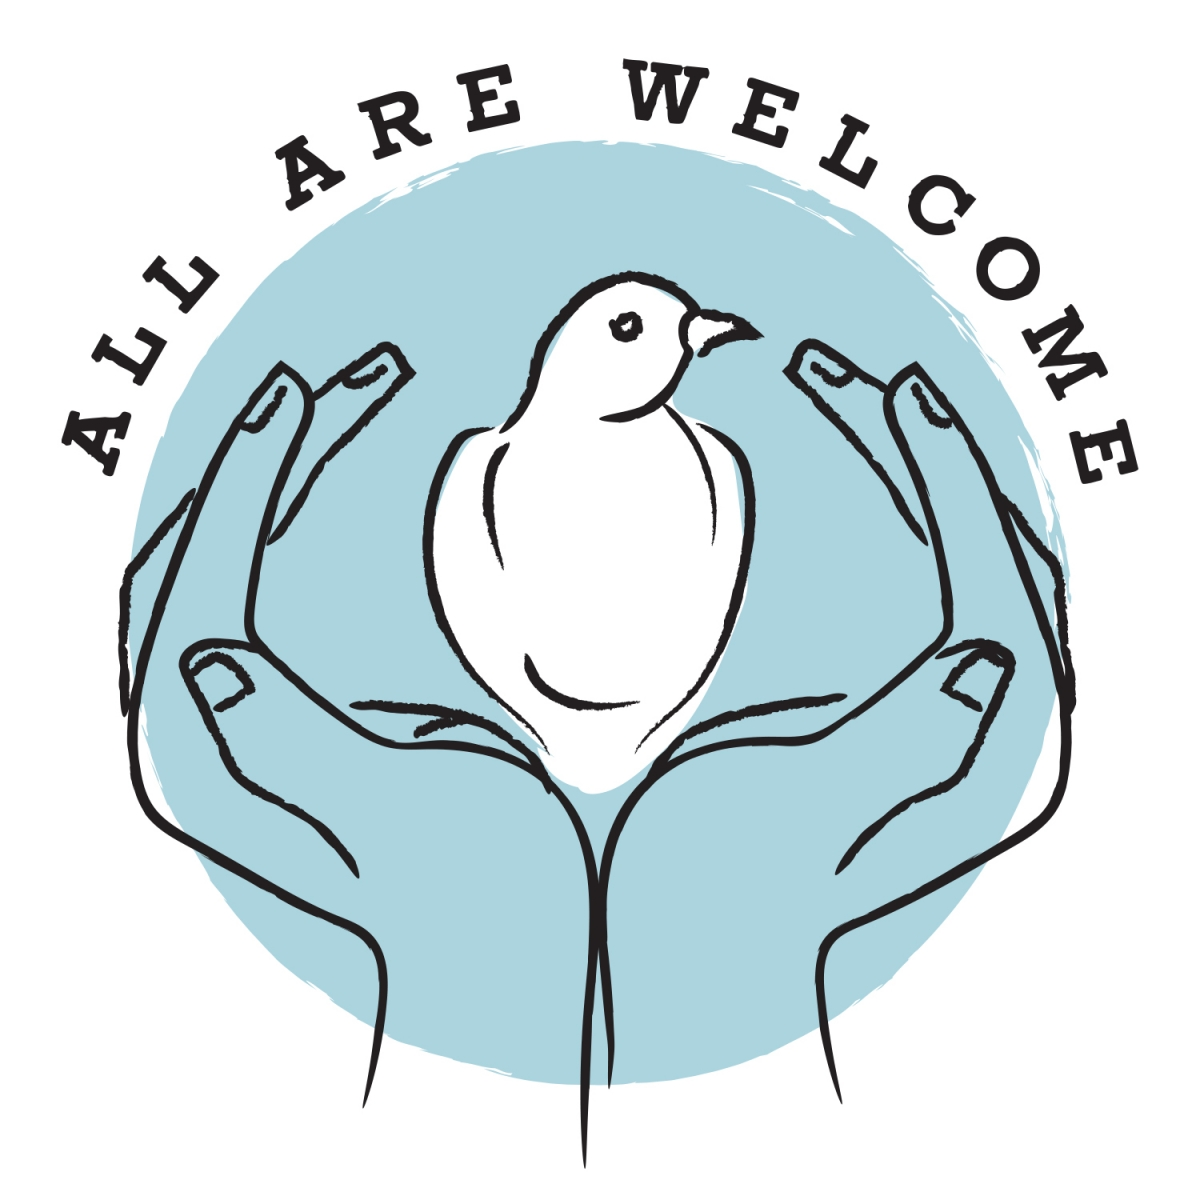 All Are Welcome Two Hands Holding Dove